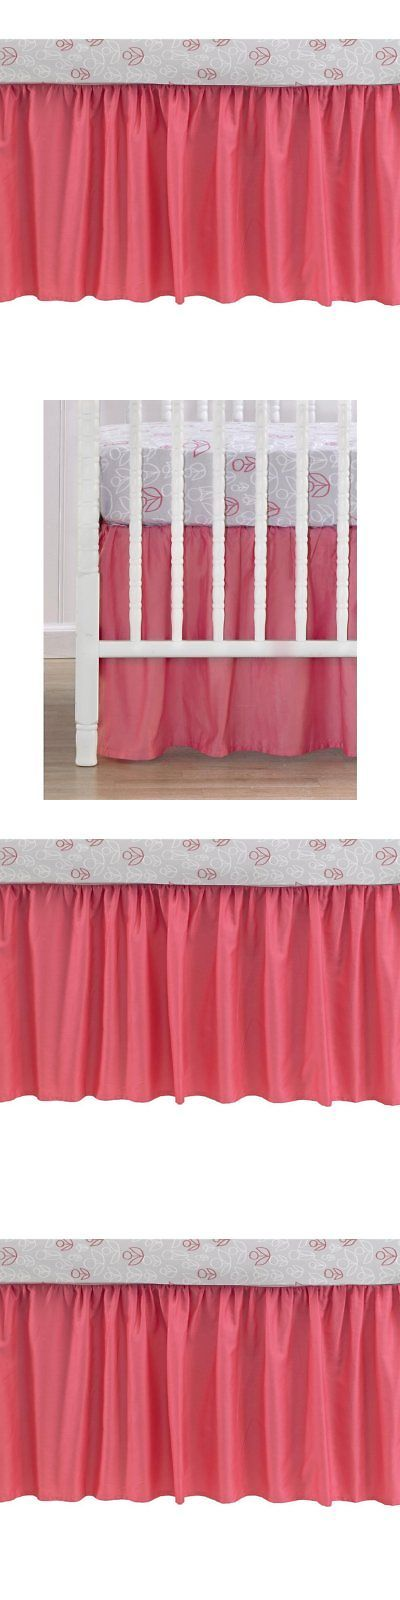 Cribskirts and Dust Ruffles 52345: Cocalo Collection Coral Cotton Sateen Gathered Dust Ruffle Crib Bed Skirt -> BUY IT NOW ONLY: $55.47 on eBay!